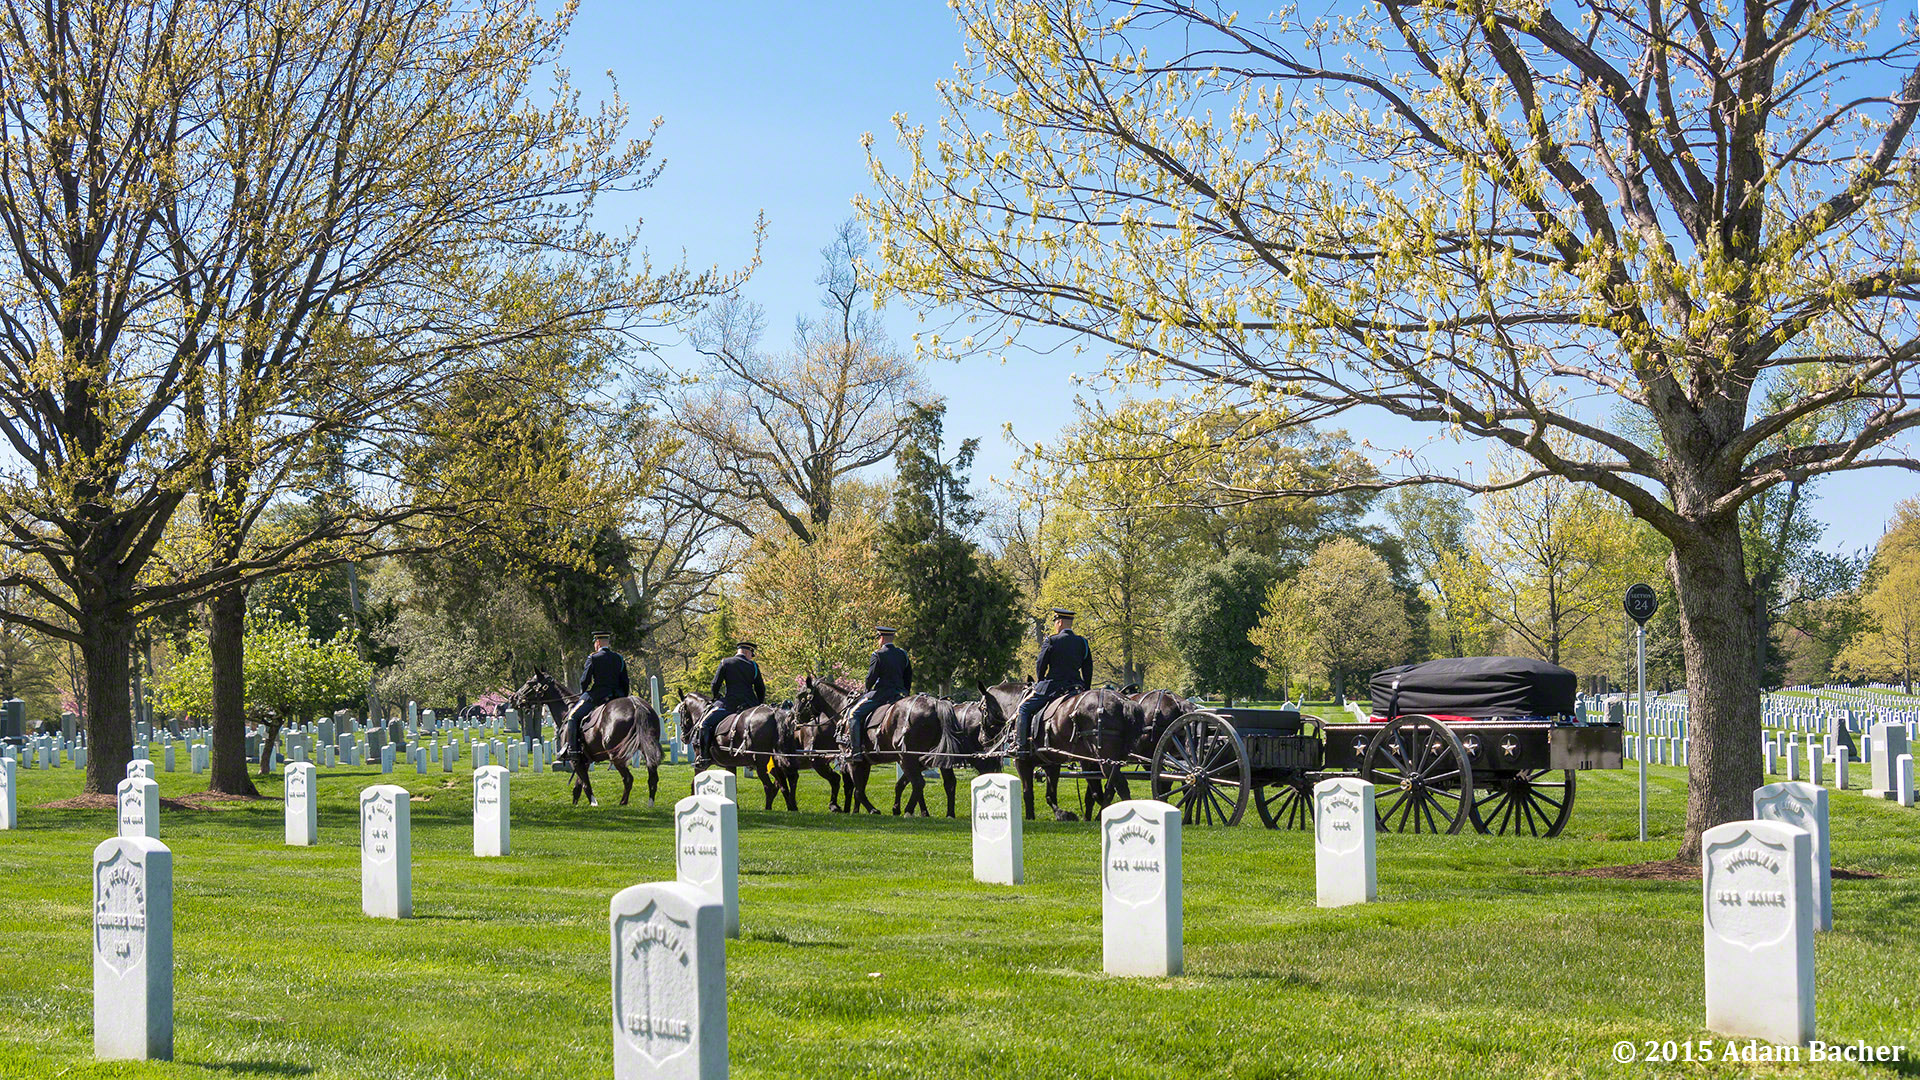 Portland Oregon editorial photographer on assignment at Arlington National Cemetery